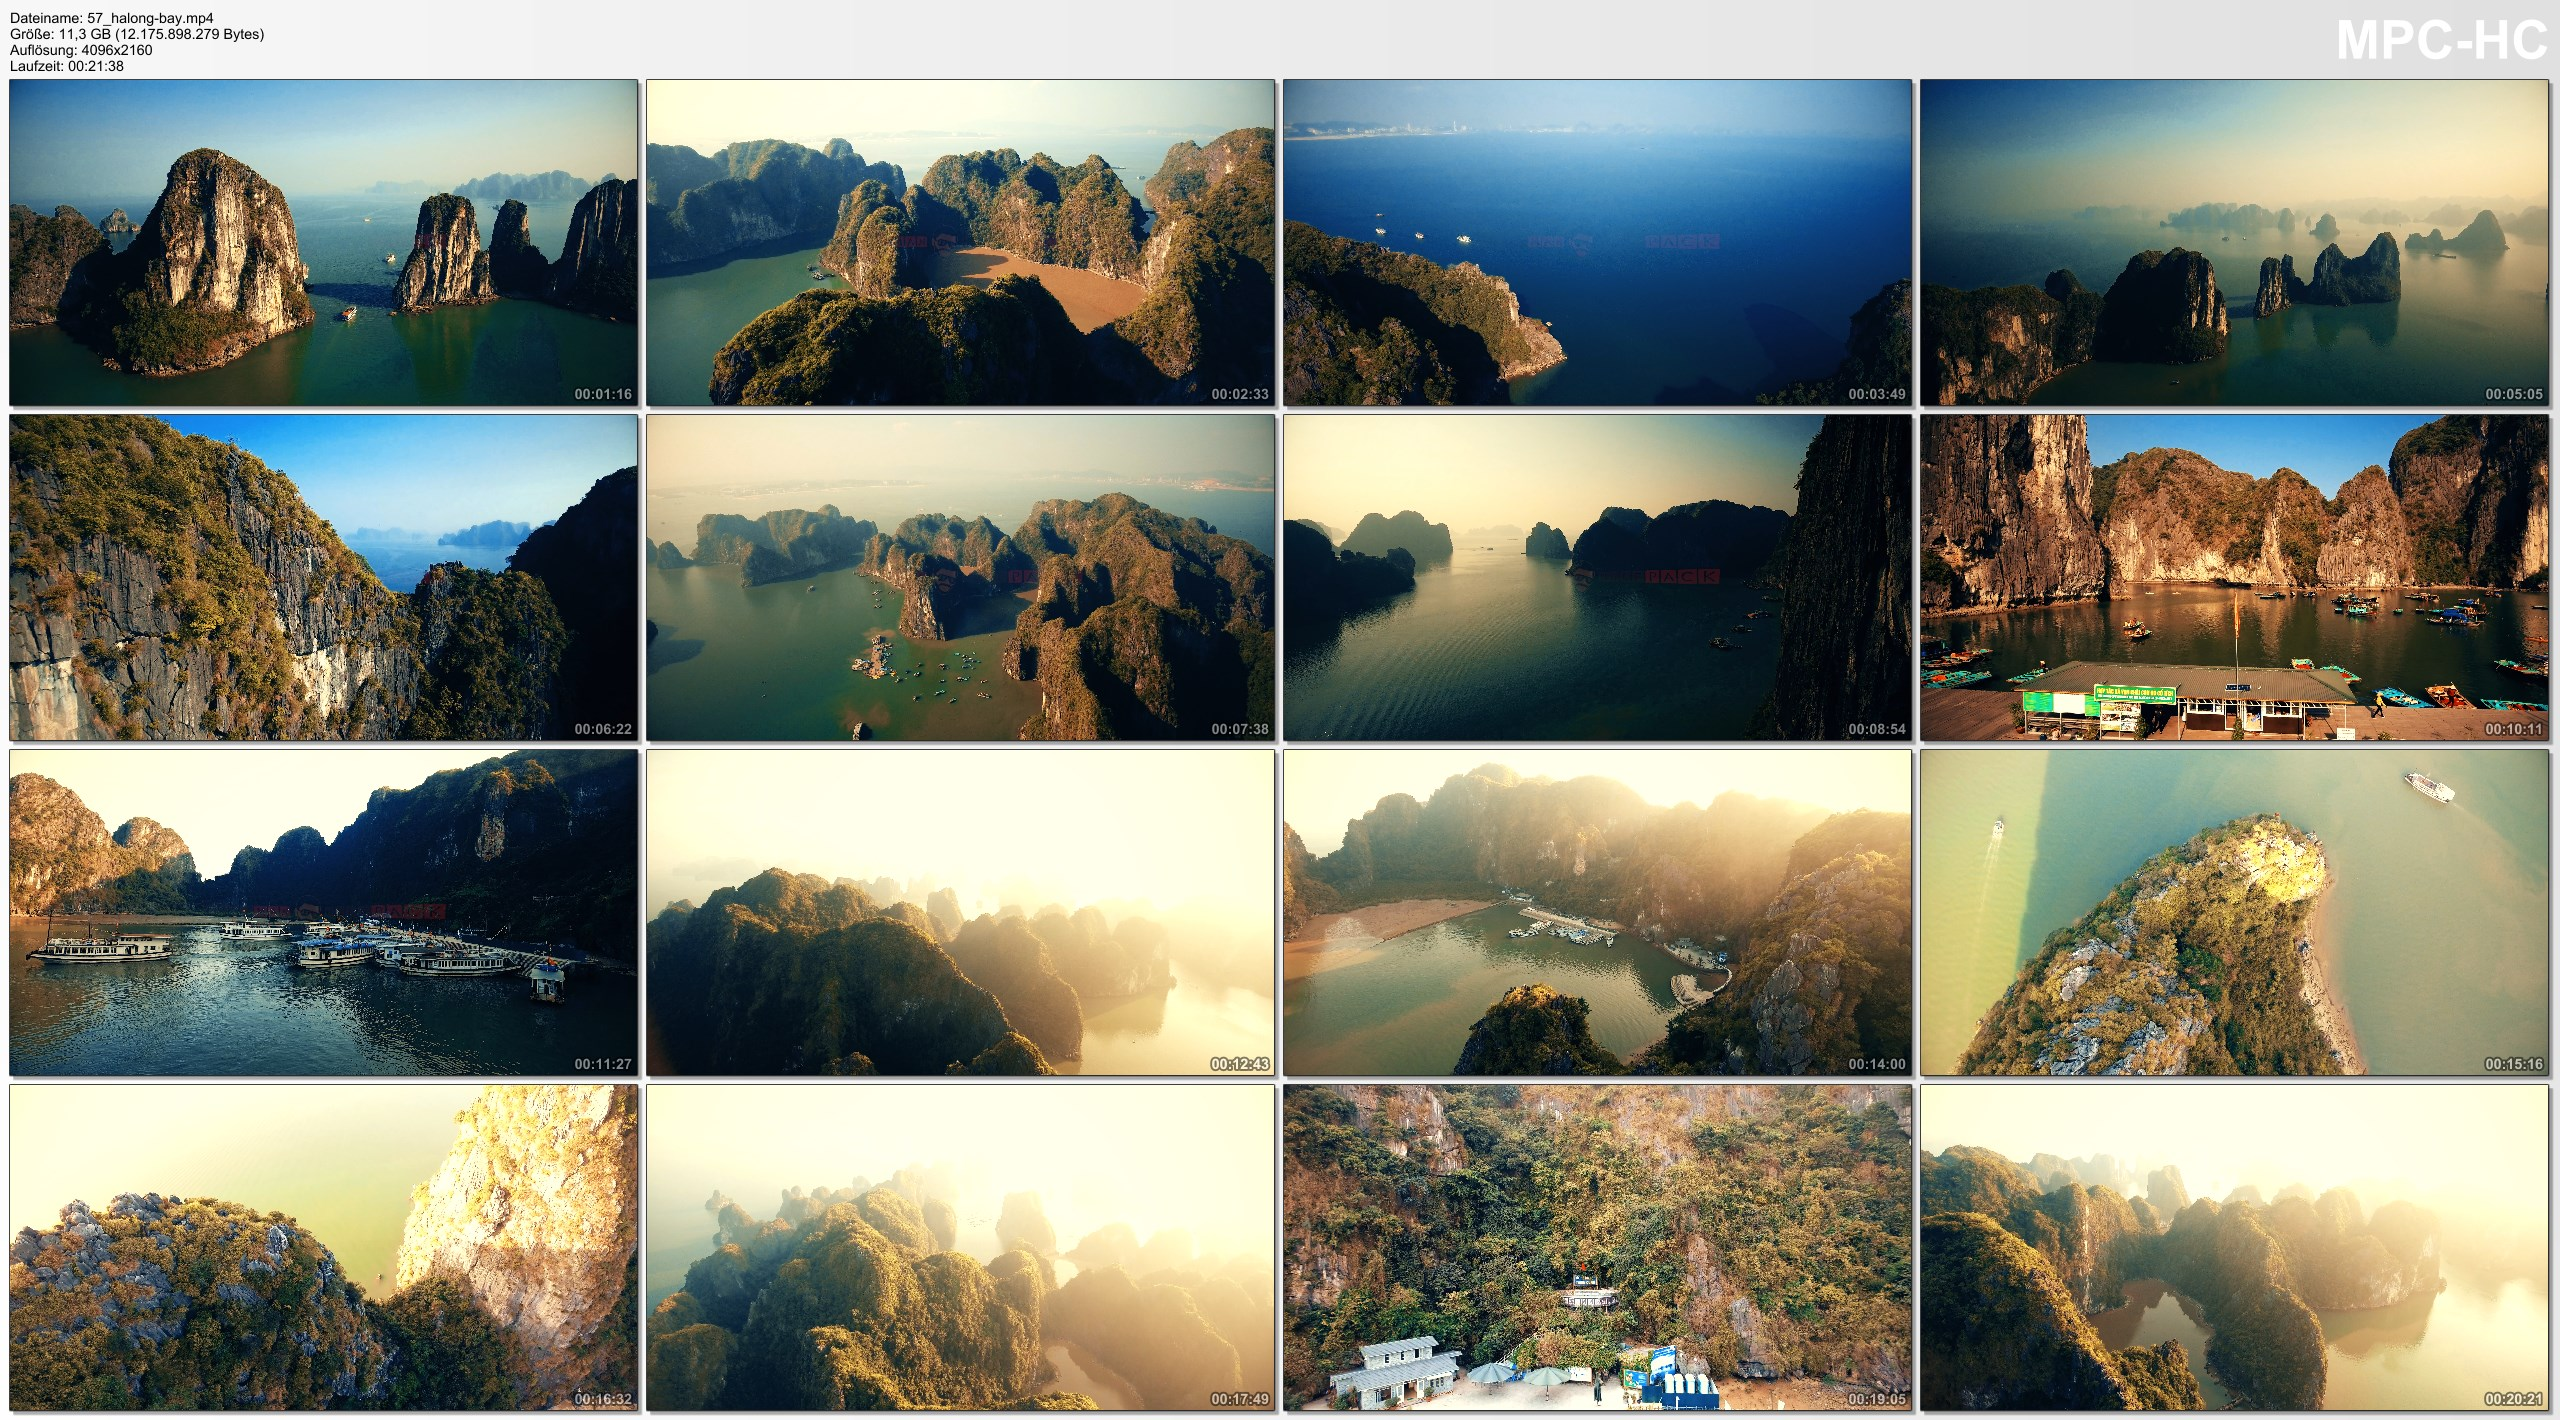 Drone Pictures from Video 【4K】Drone Relax Travel Video   HALONG BAY ..:: Vietnams Natural Wonder of the World 2019